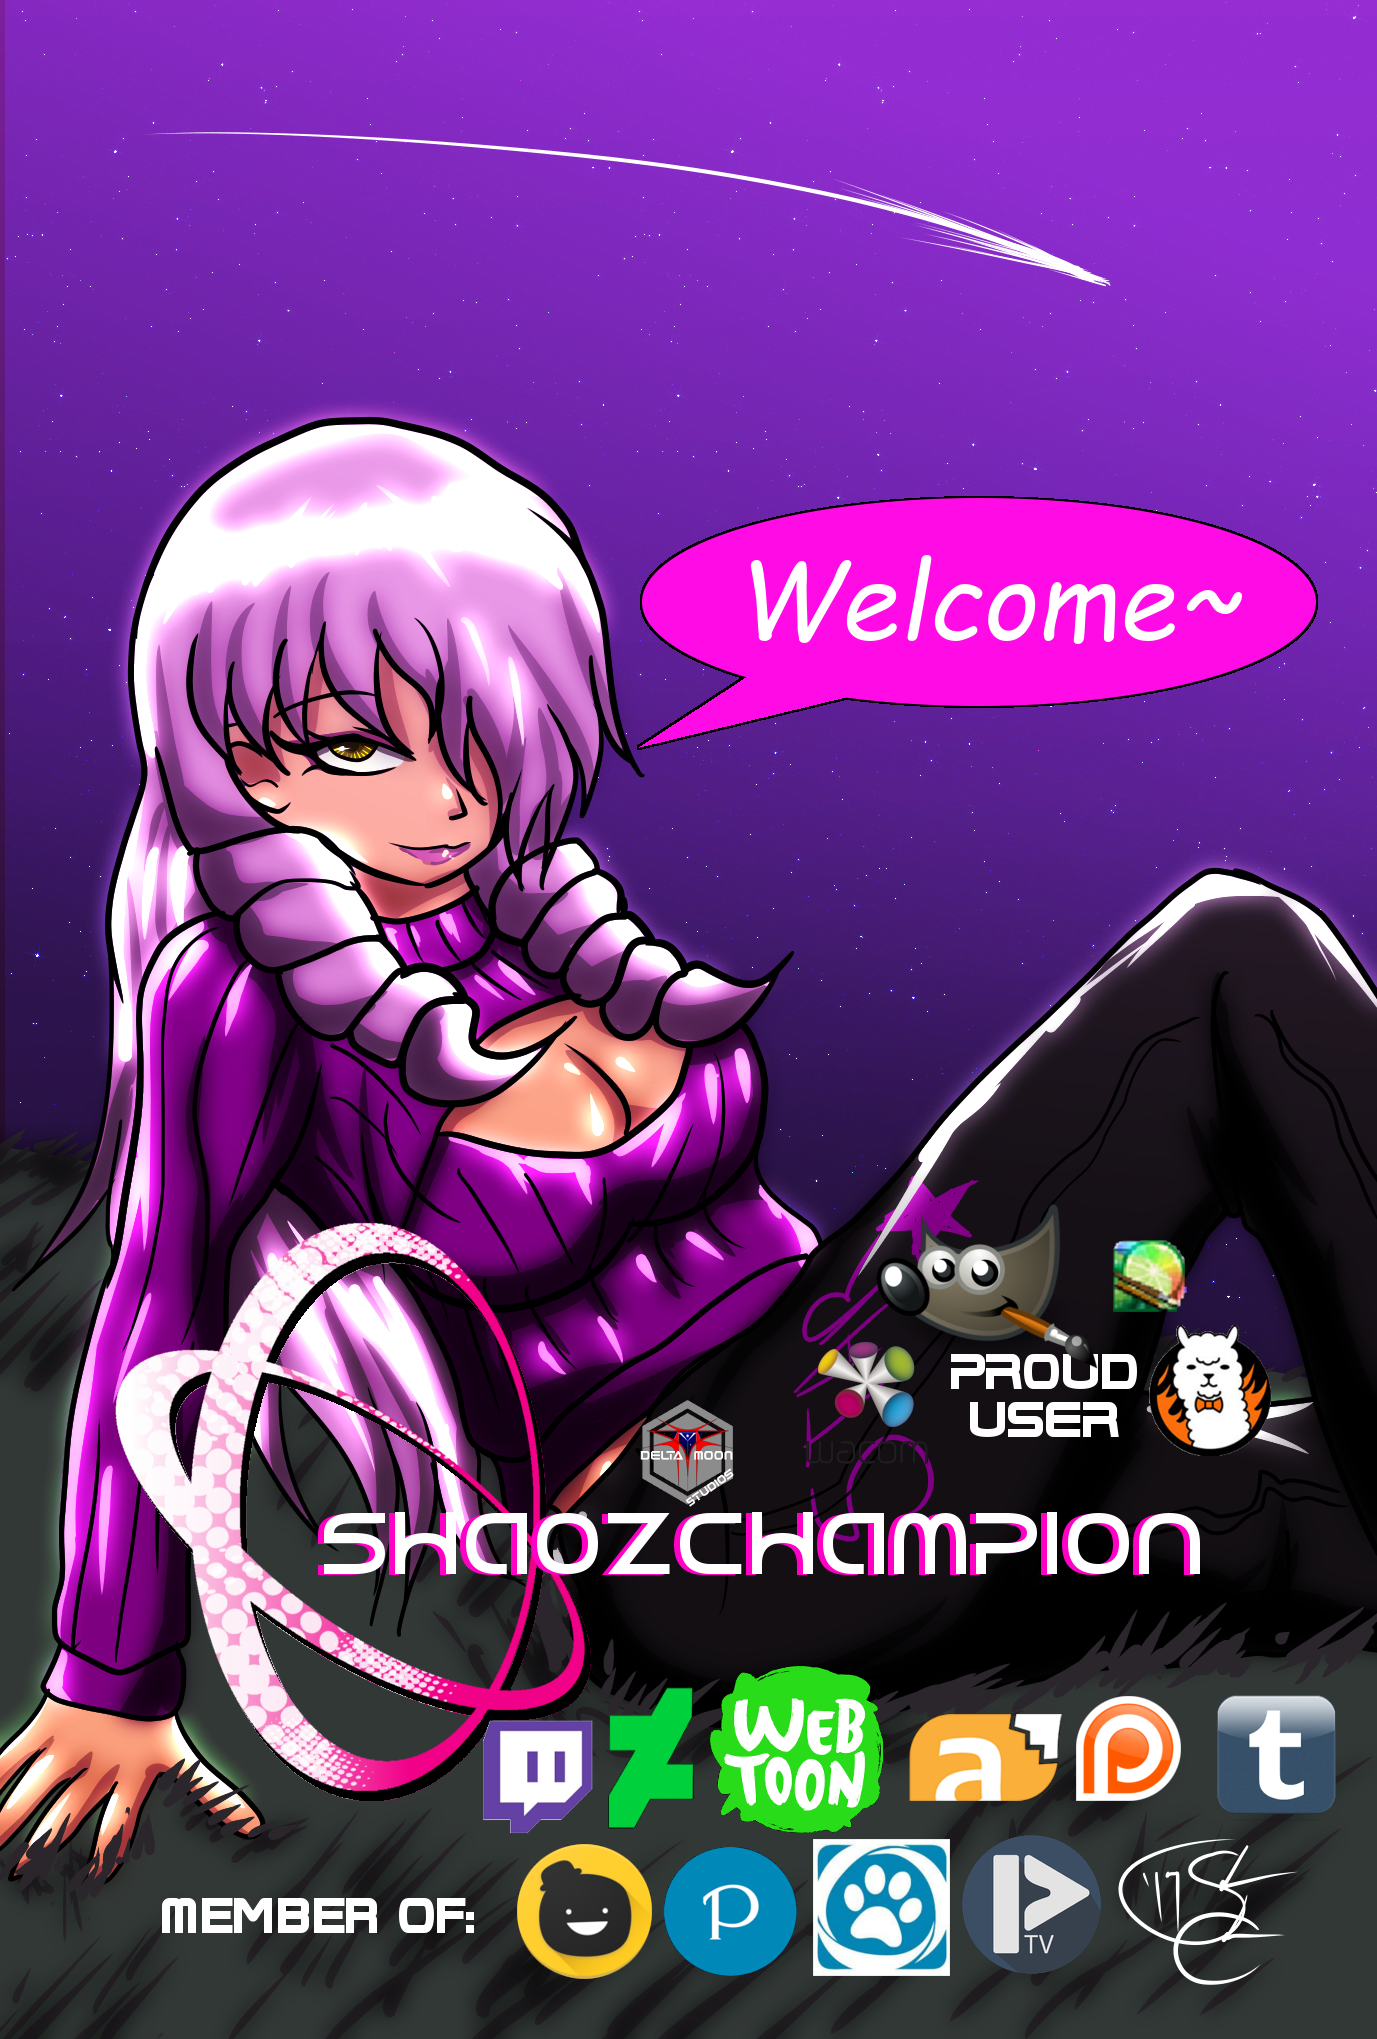 ShaozChampion's Profile Picture